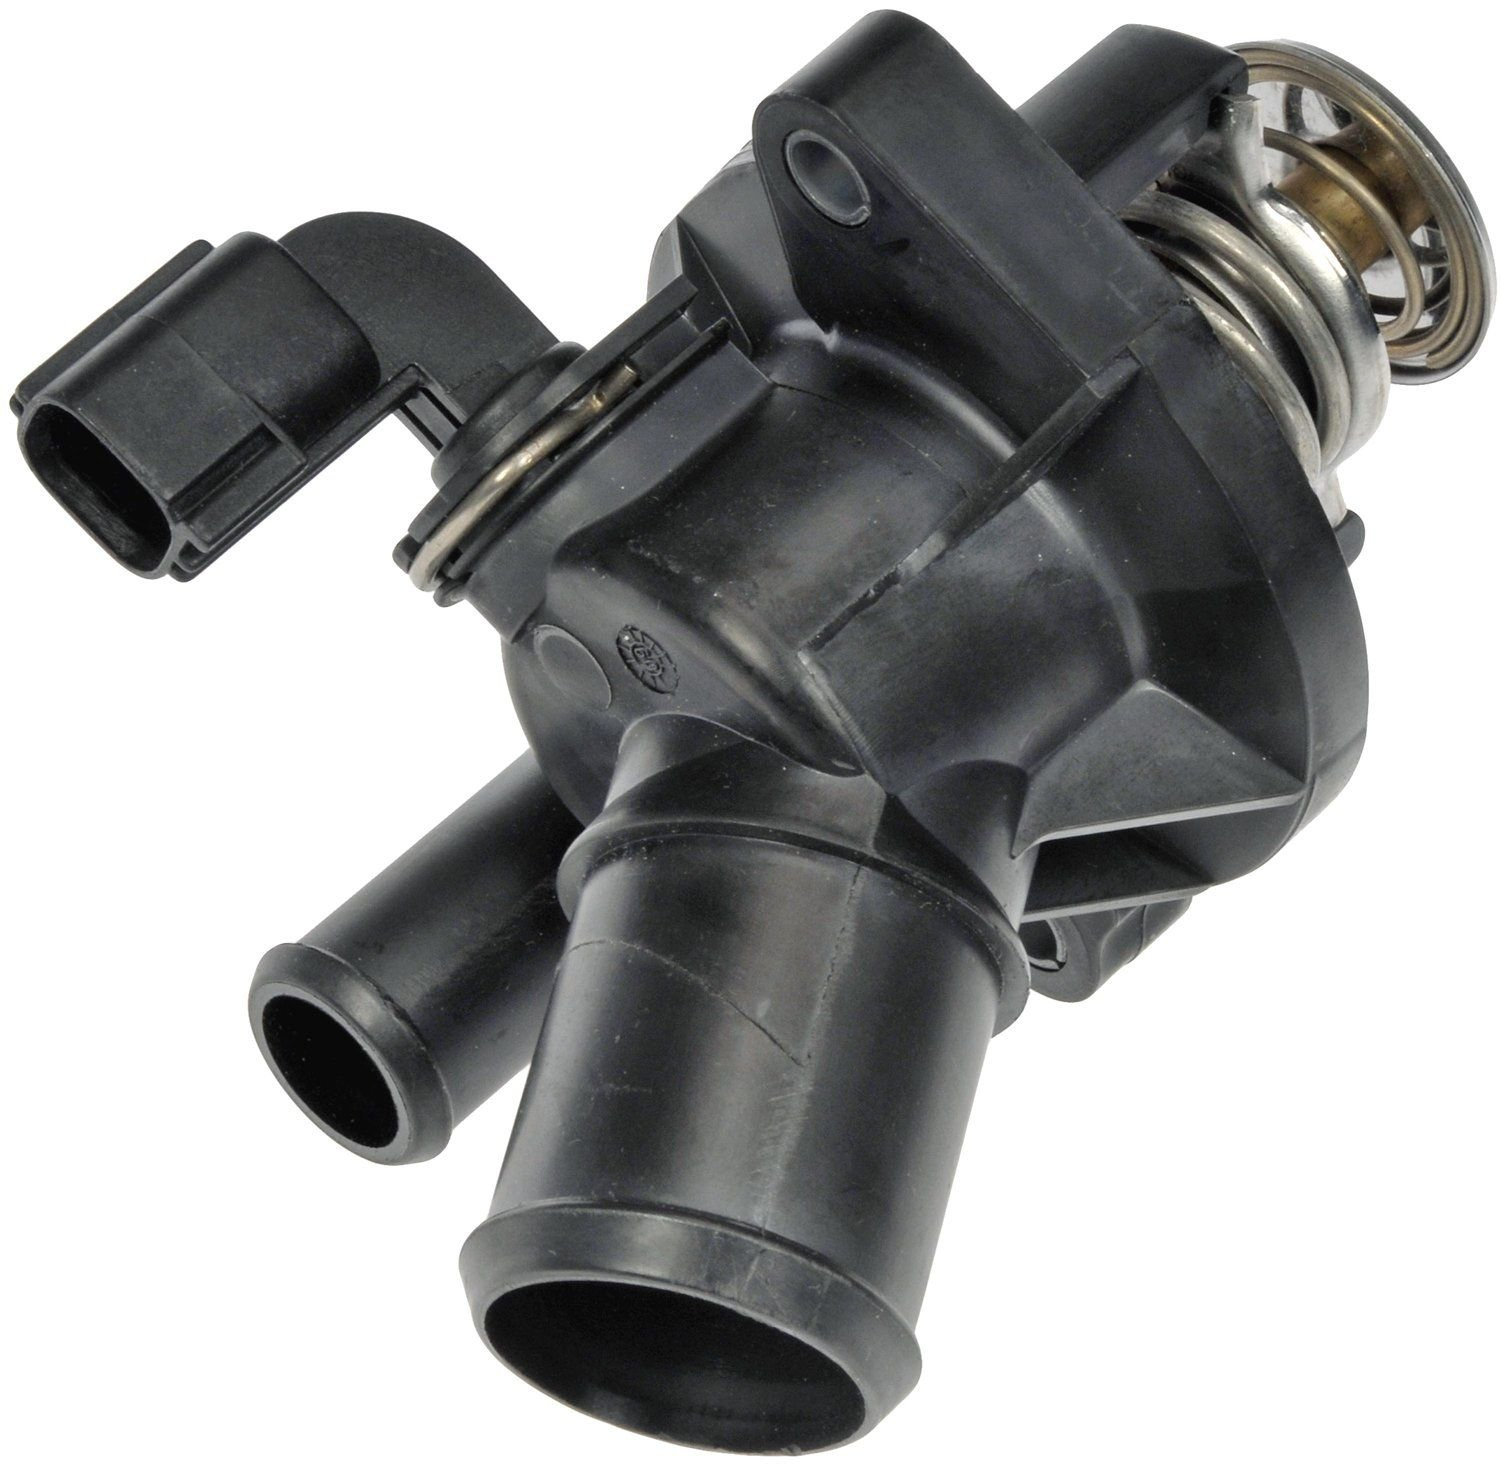 Ford Ranger Engine Coolant Thermostat Housing Replacement Dorman Cooling Diagram 2001 N A 4 Cyl 23l 902 820